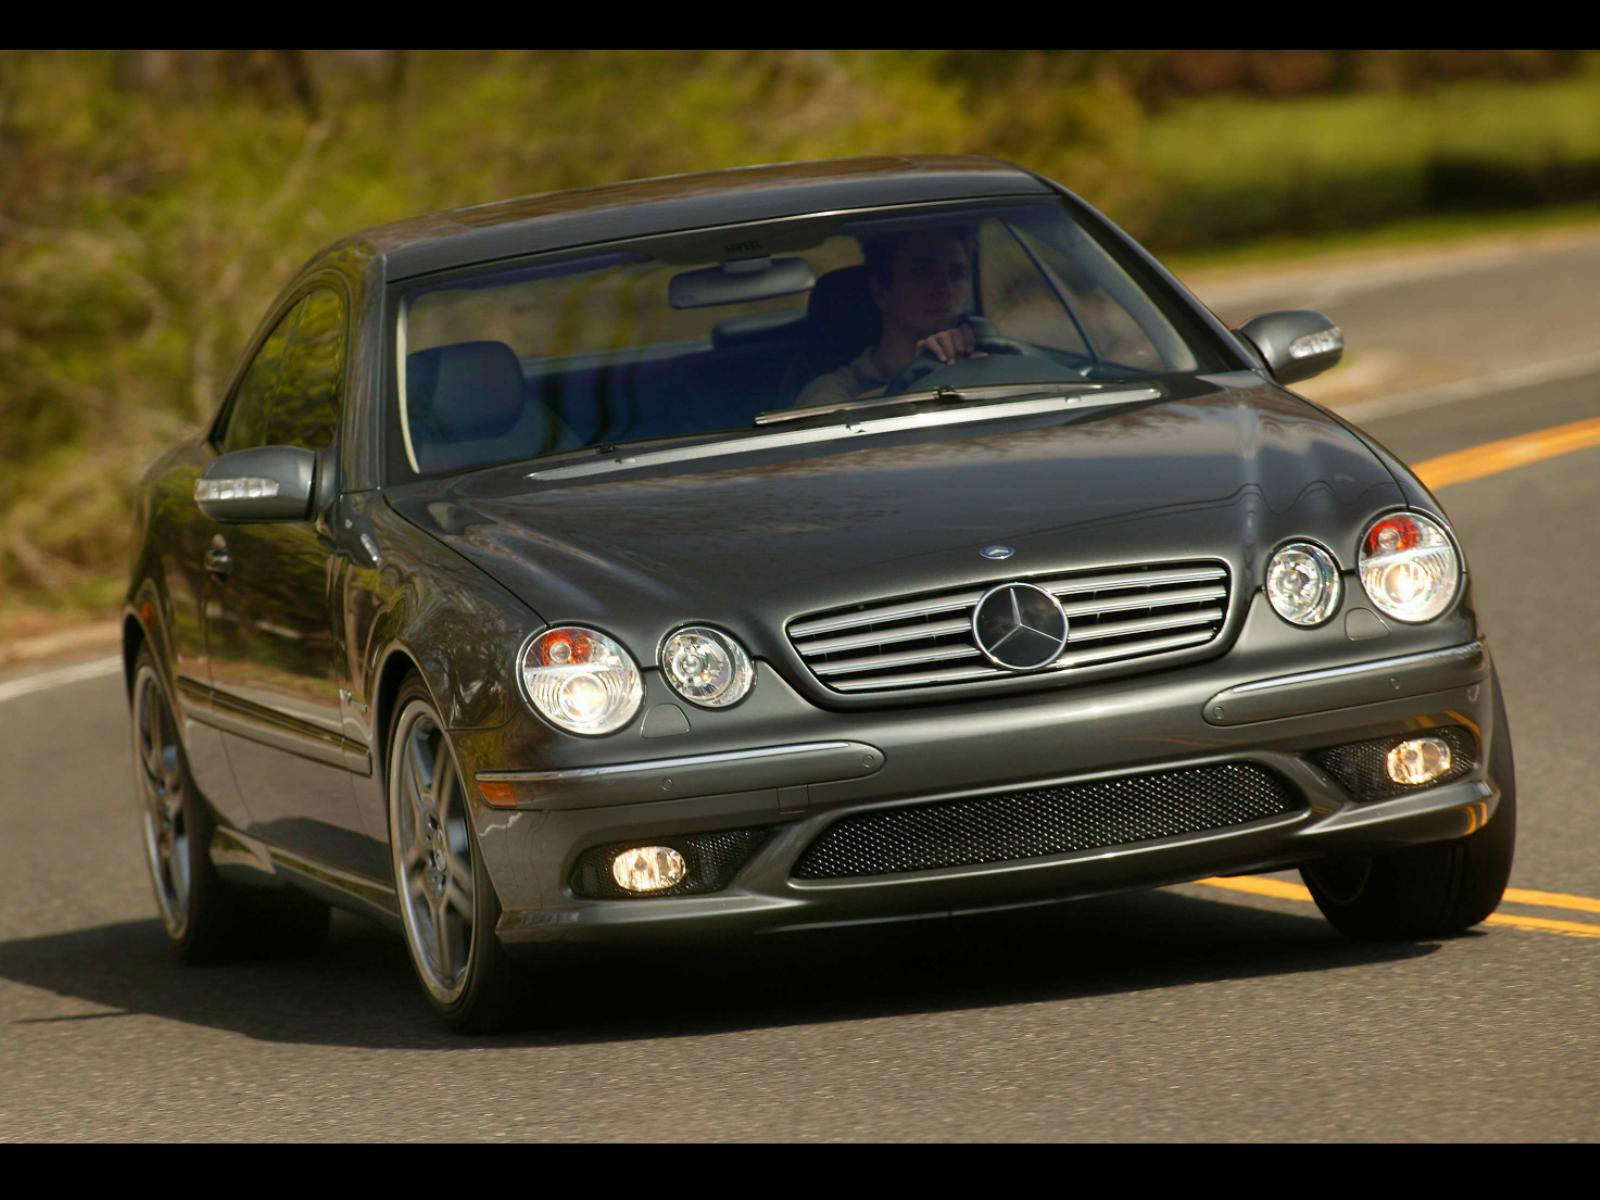 Mercedes-Benz CL AMG photo 14605